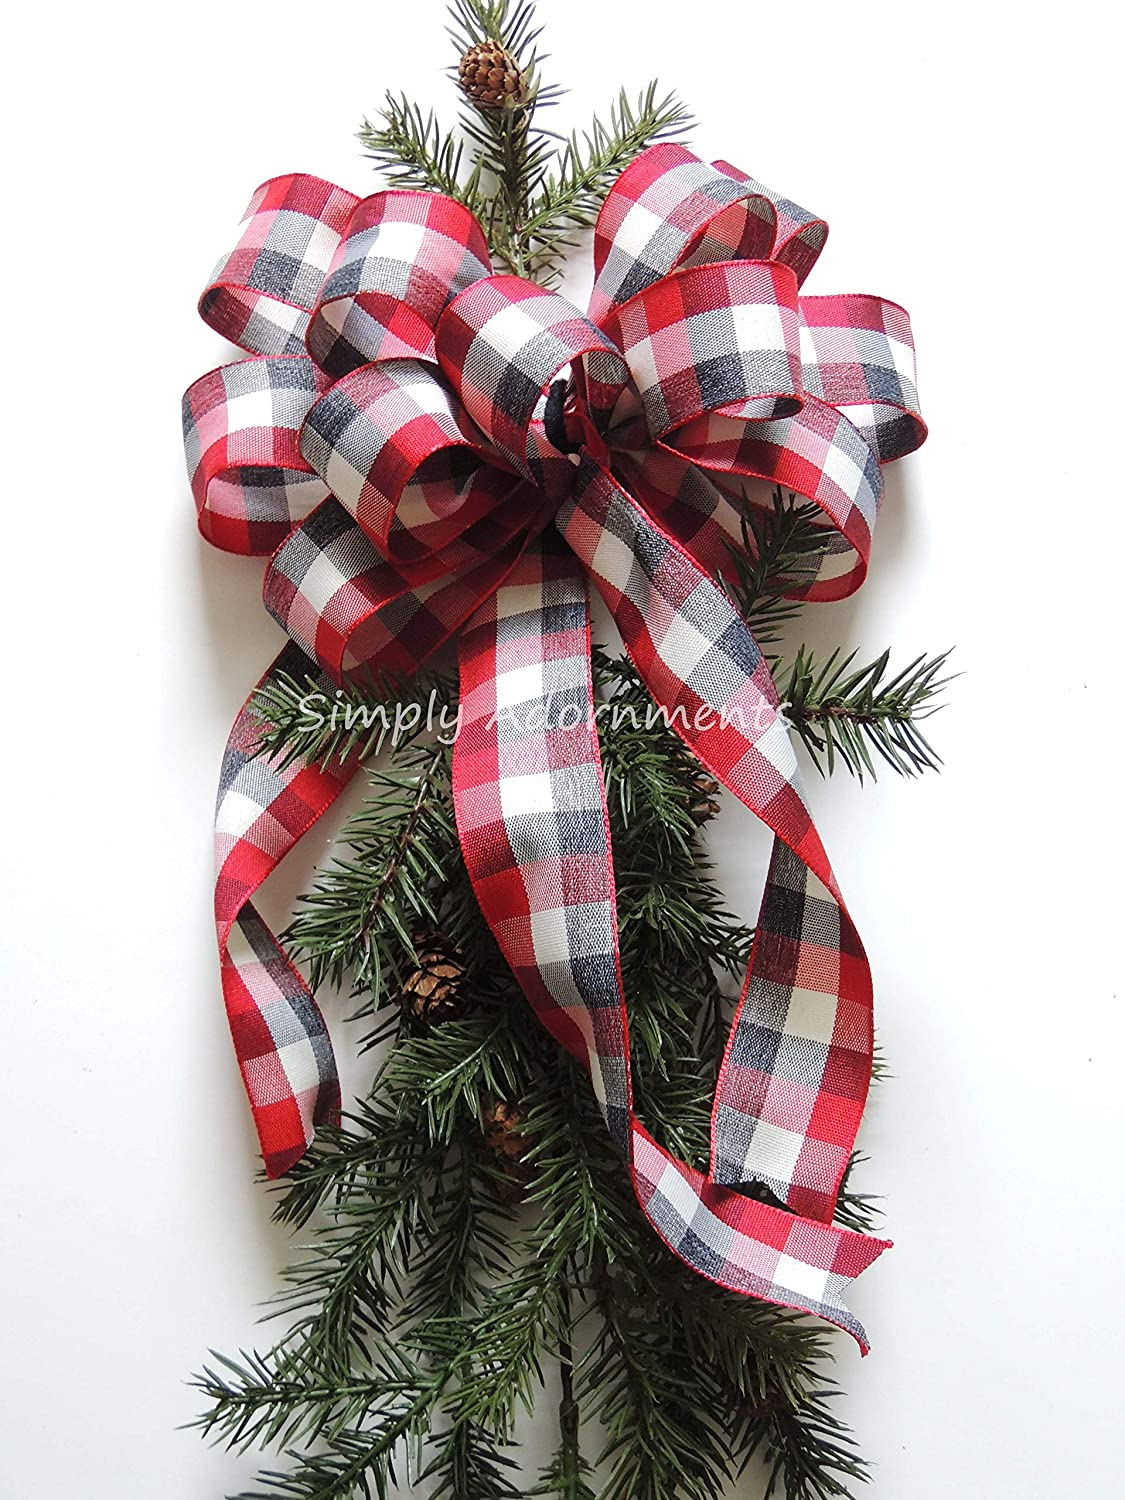 Black Red off White Cabin Plaid BOW ONLY Red Black Cream Check Christmas Wreath Bow Black Red Buffalo Check Bow Buffalo Plaid Christmas Topper Tree bow Christmas Lodge Home Decoration